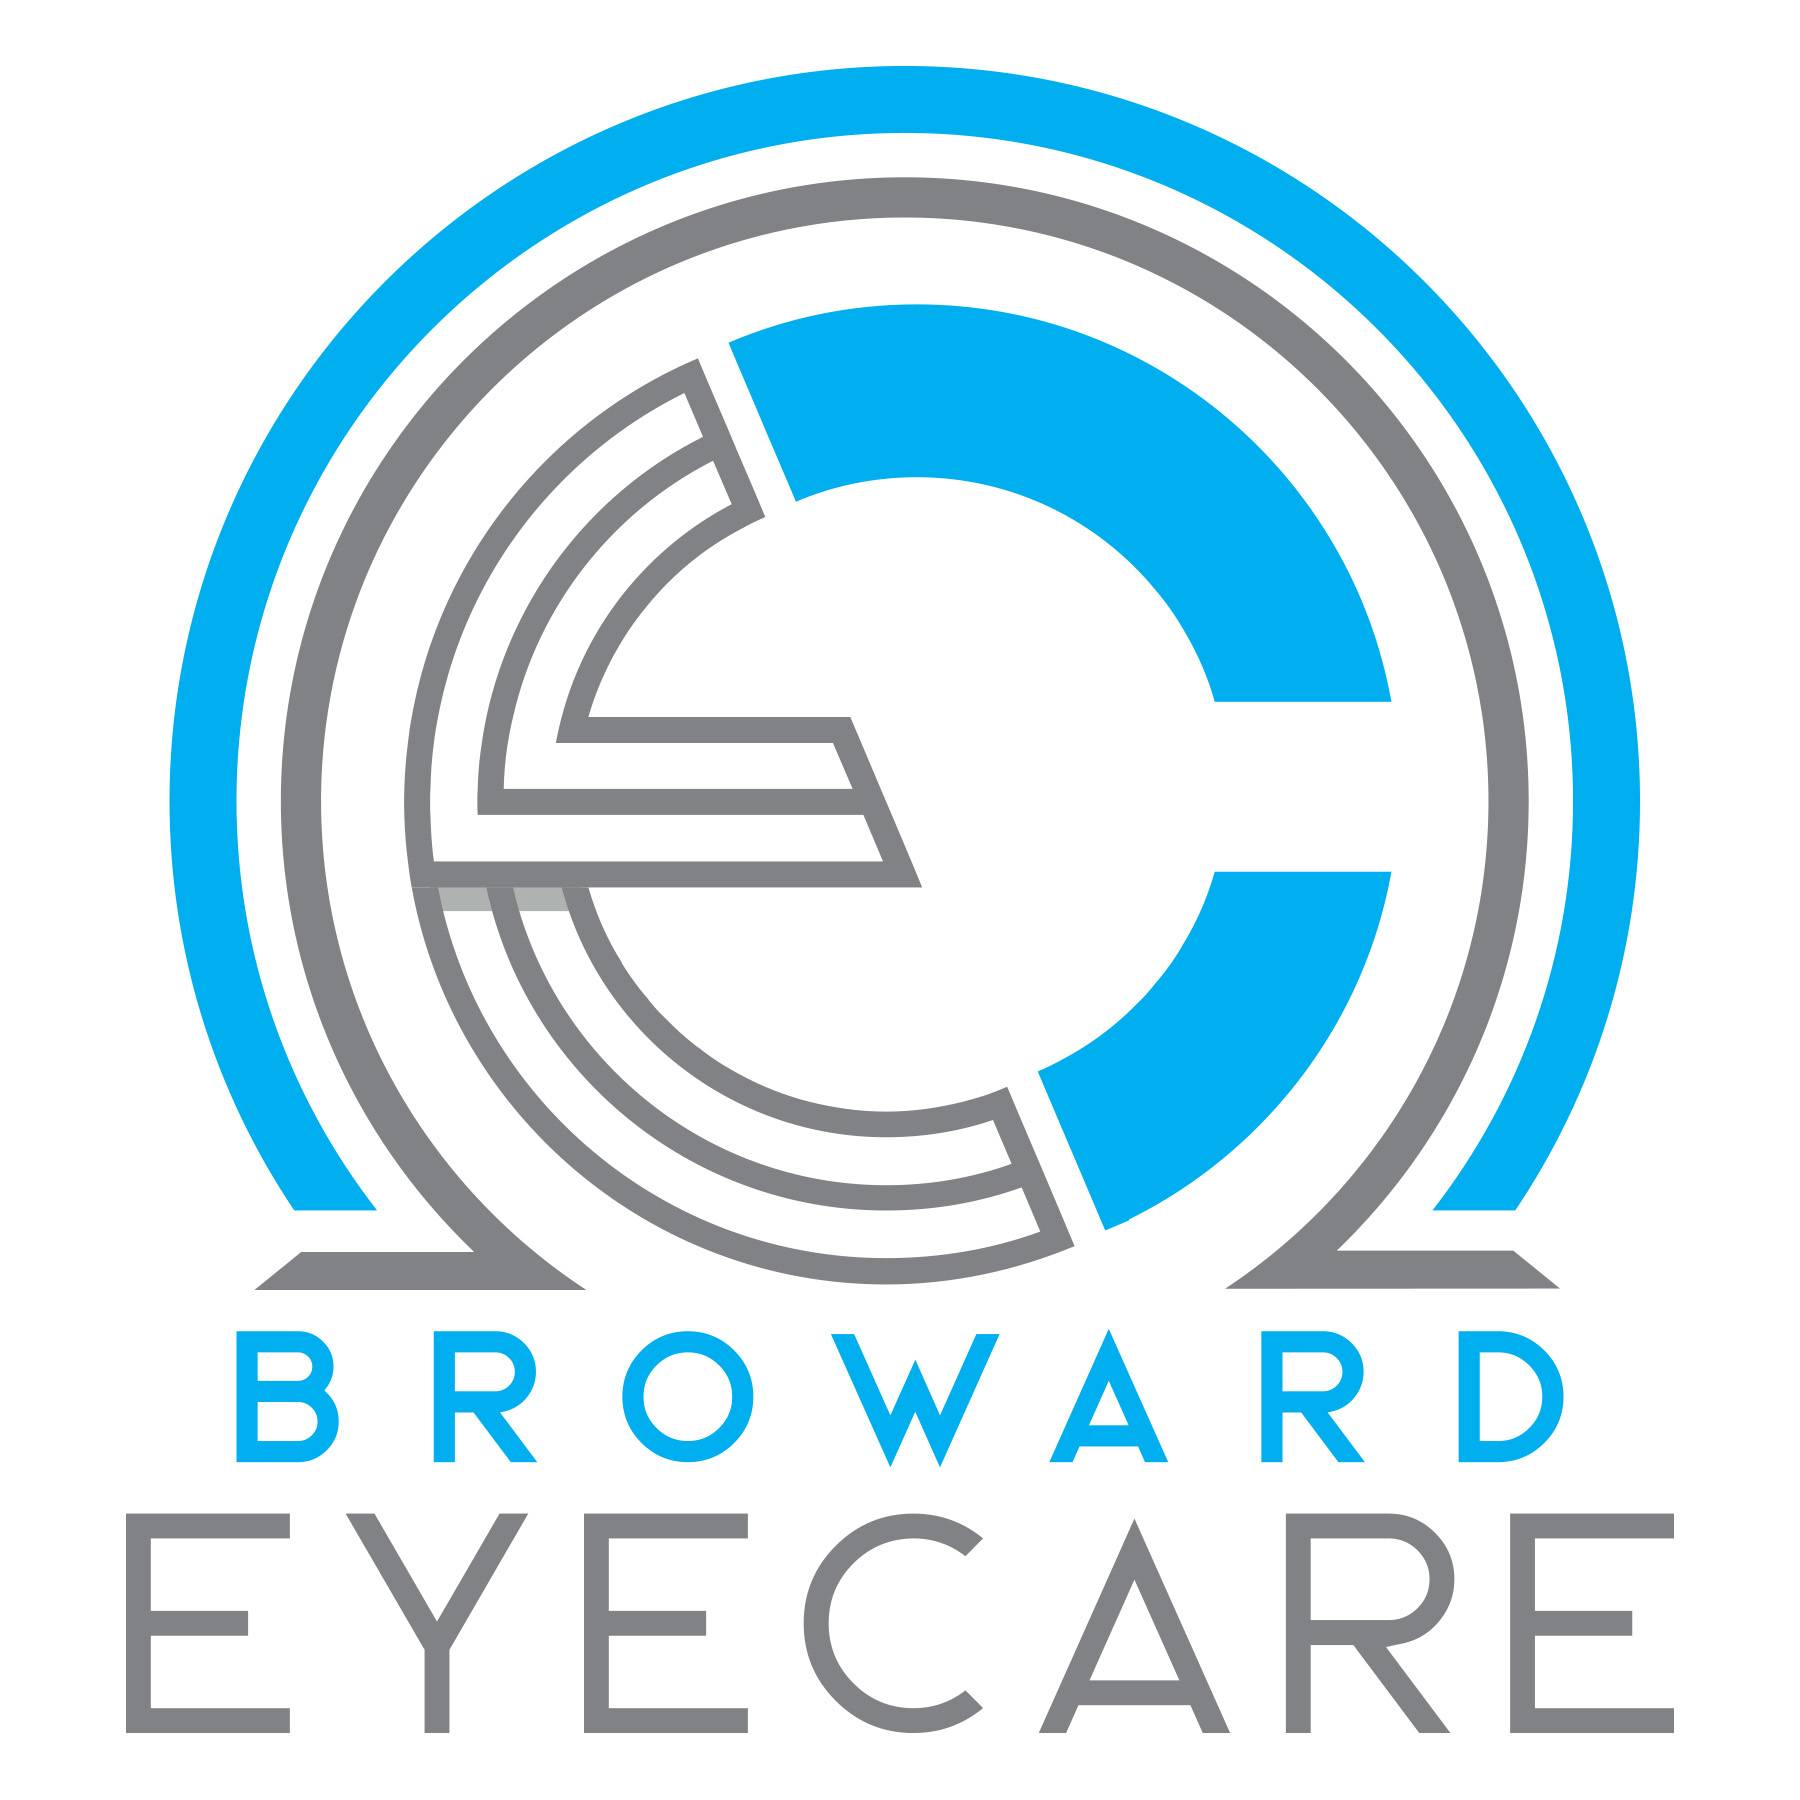 Broward Eyecare